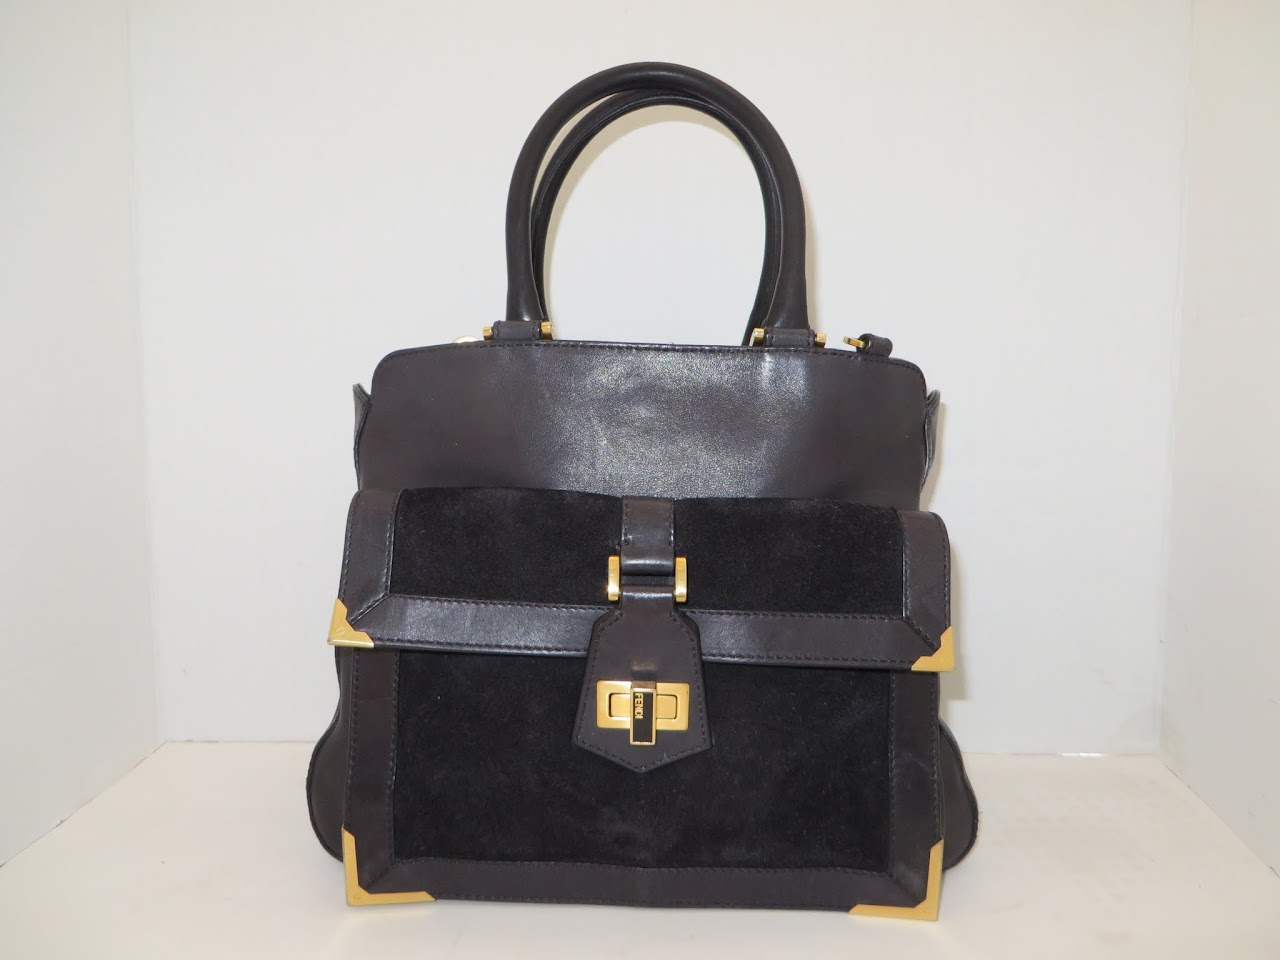 Fendi Leather and Suede Shoulder Bag